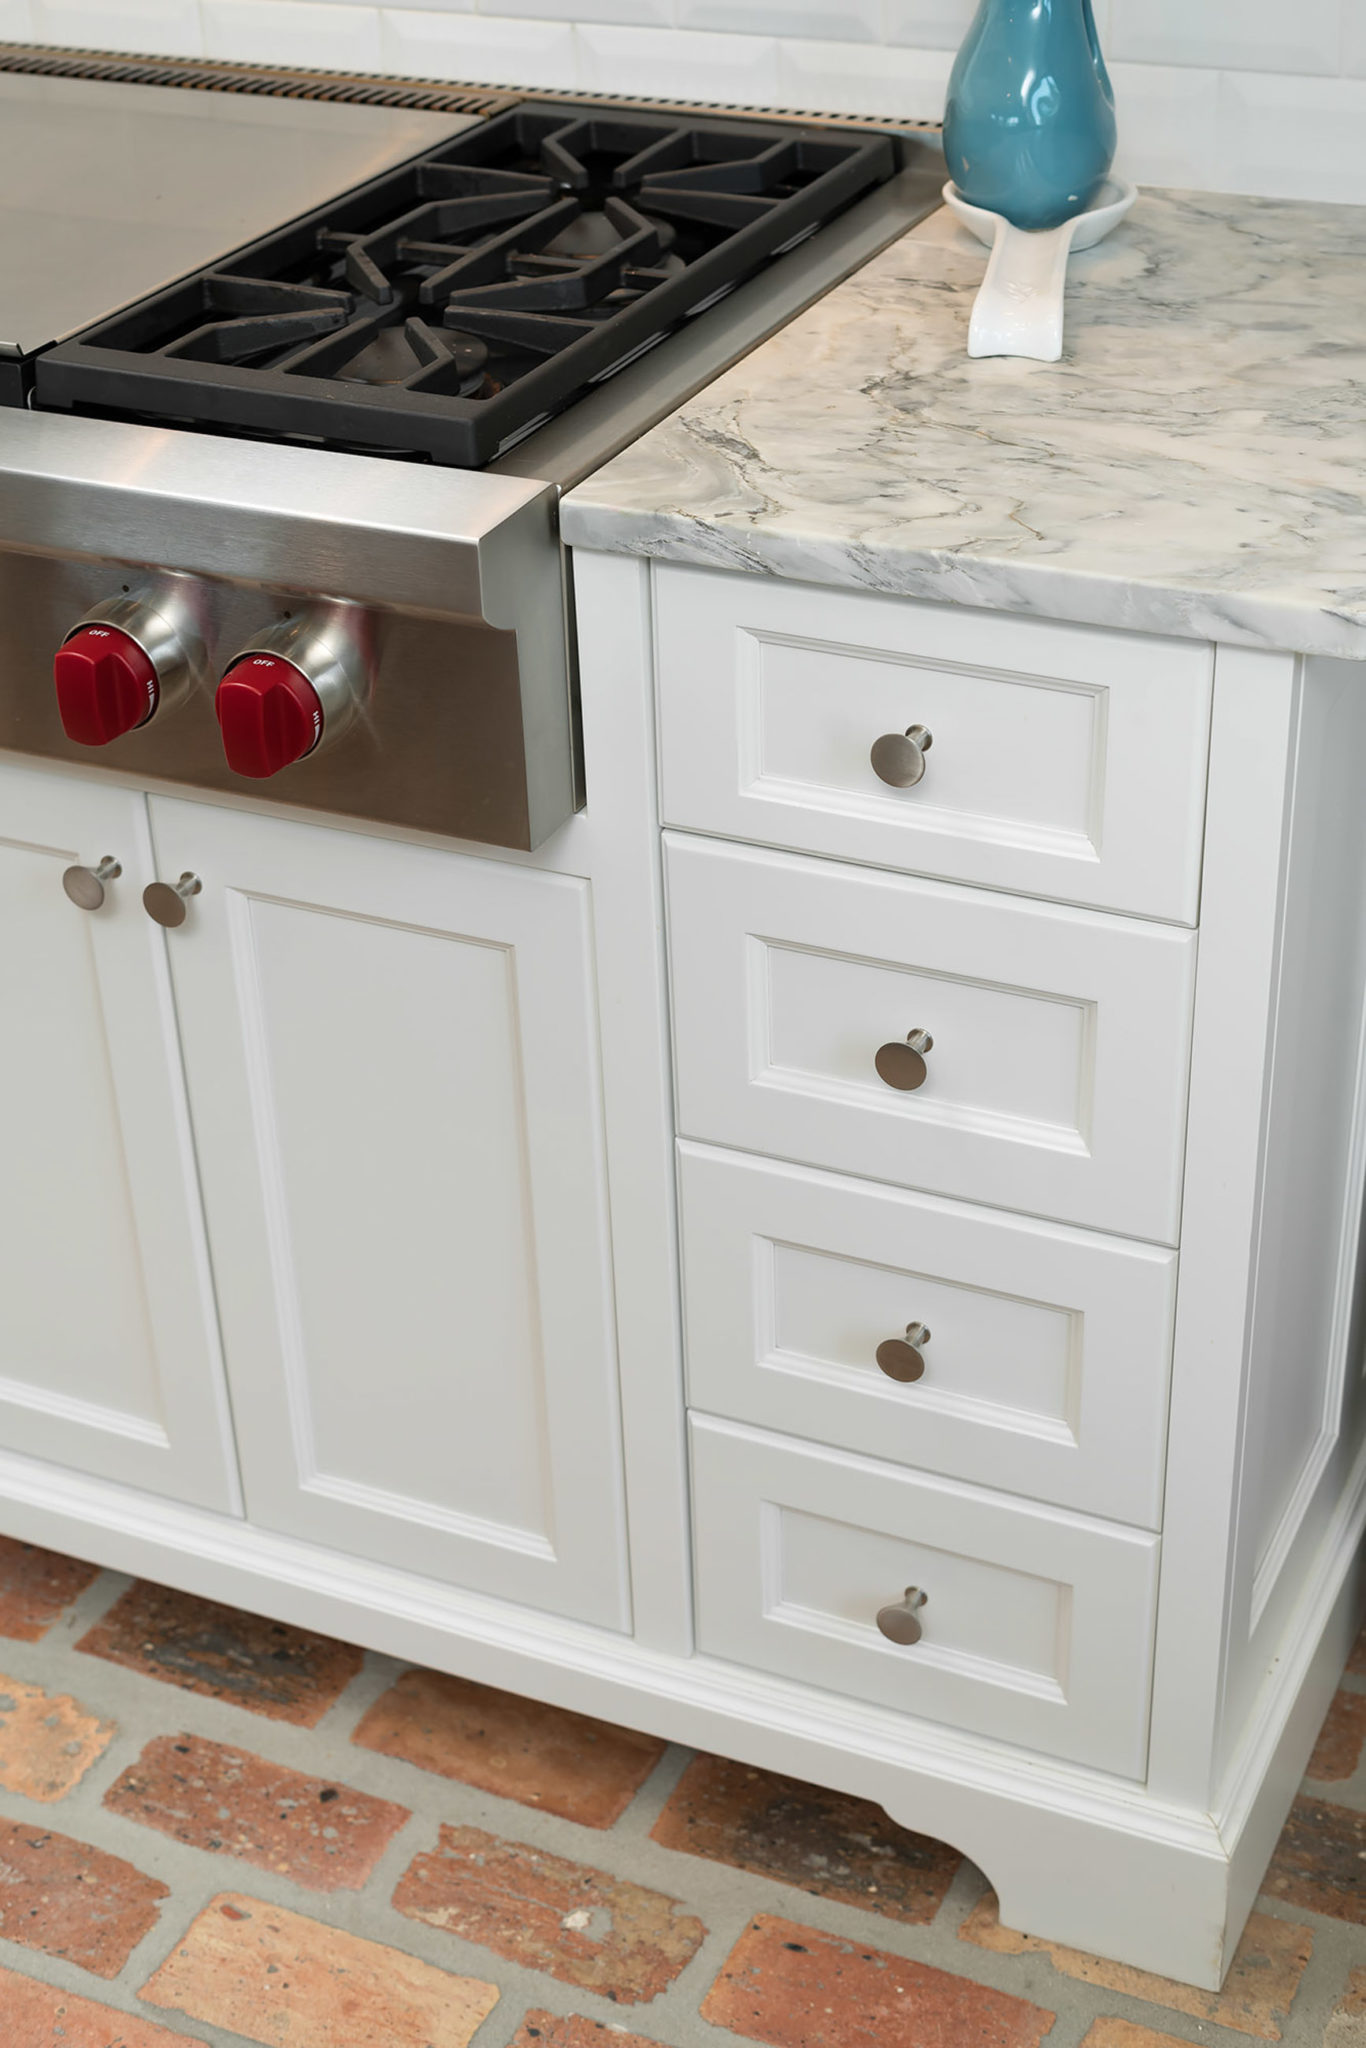 white countertops cabinets block mirror copper butcher kitchen tiles backsplash picture of best hardware